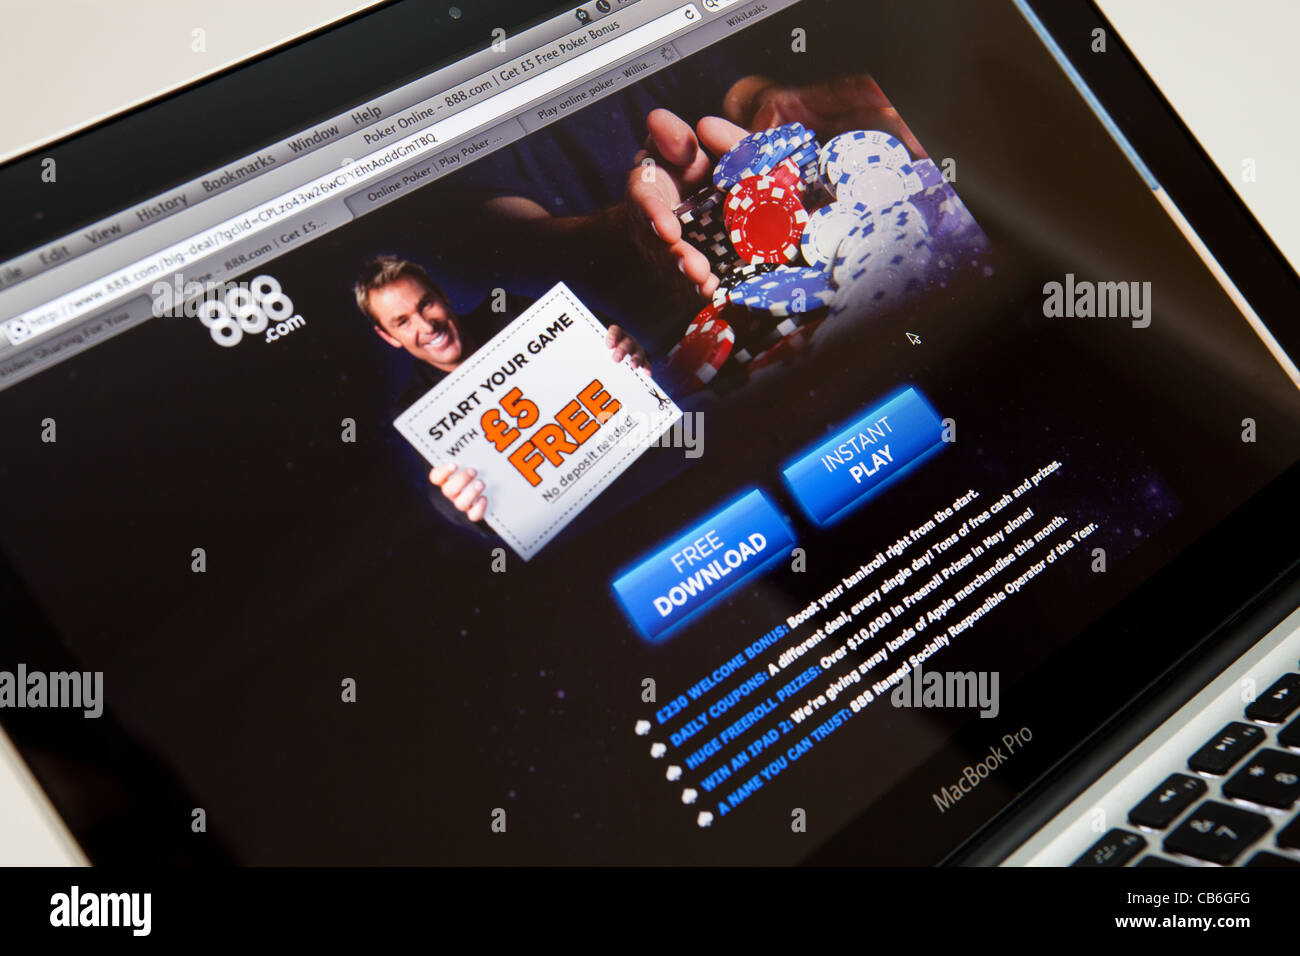 888 Betting and Poker Website Screen shot of web page - Stock Image